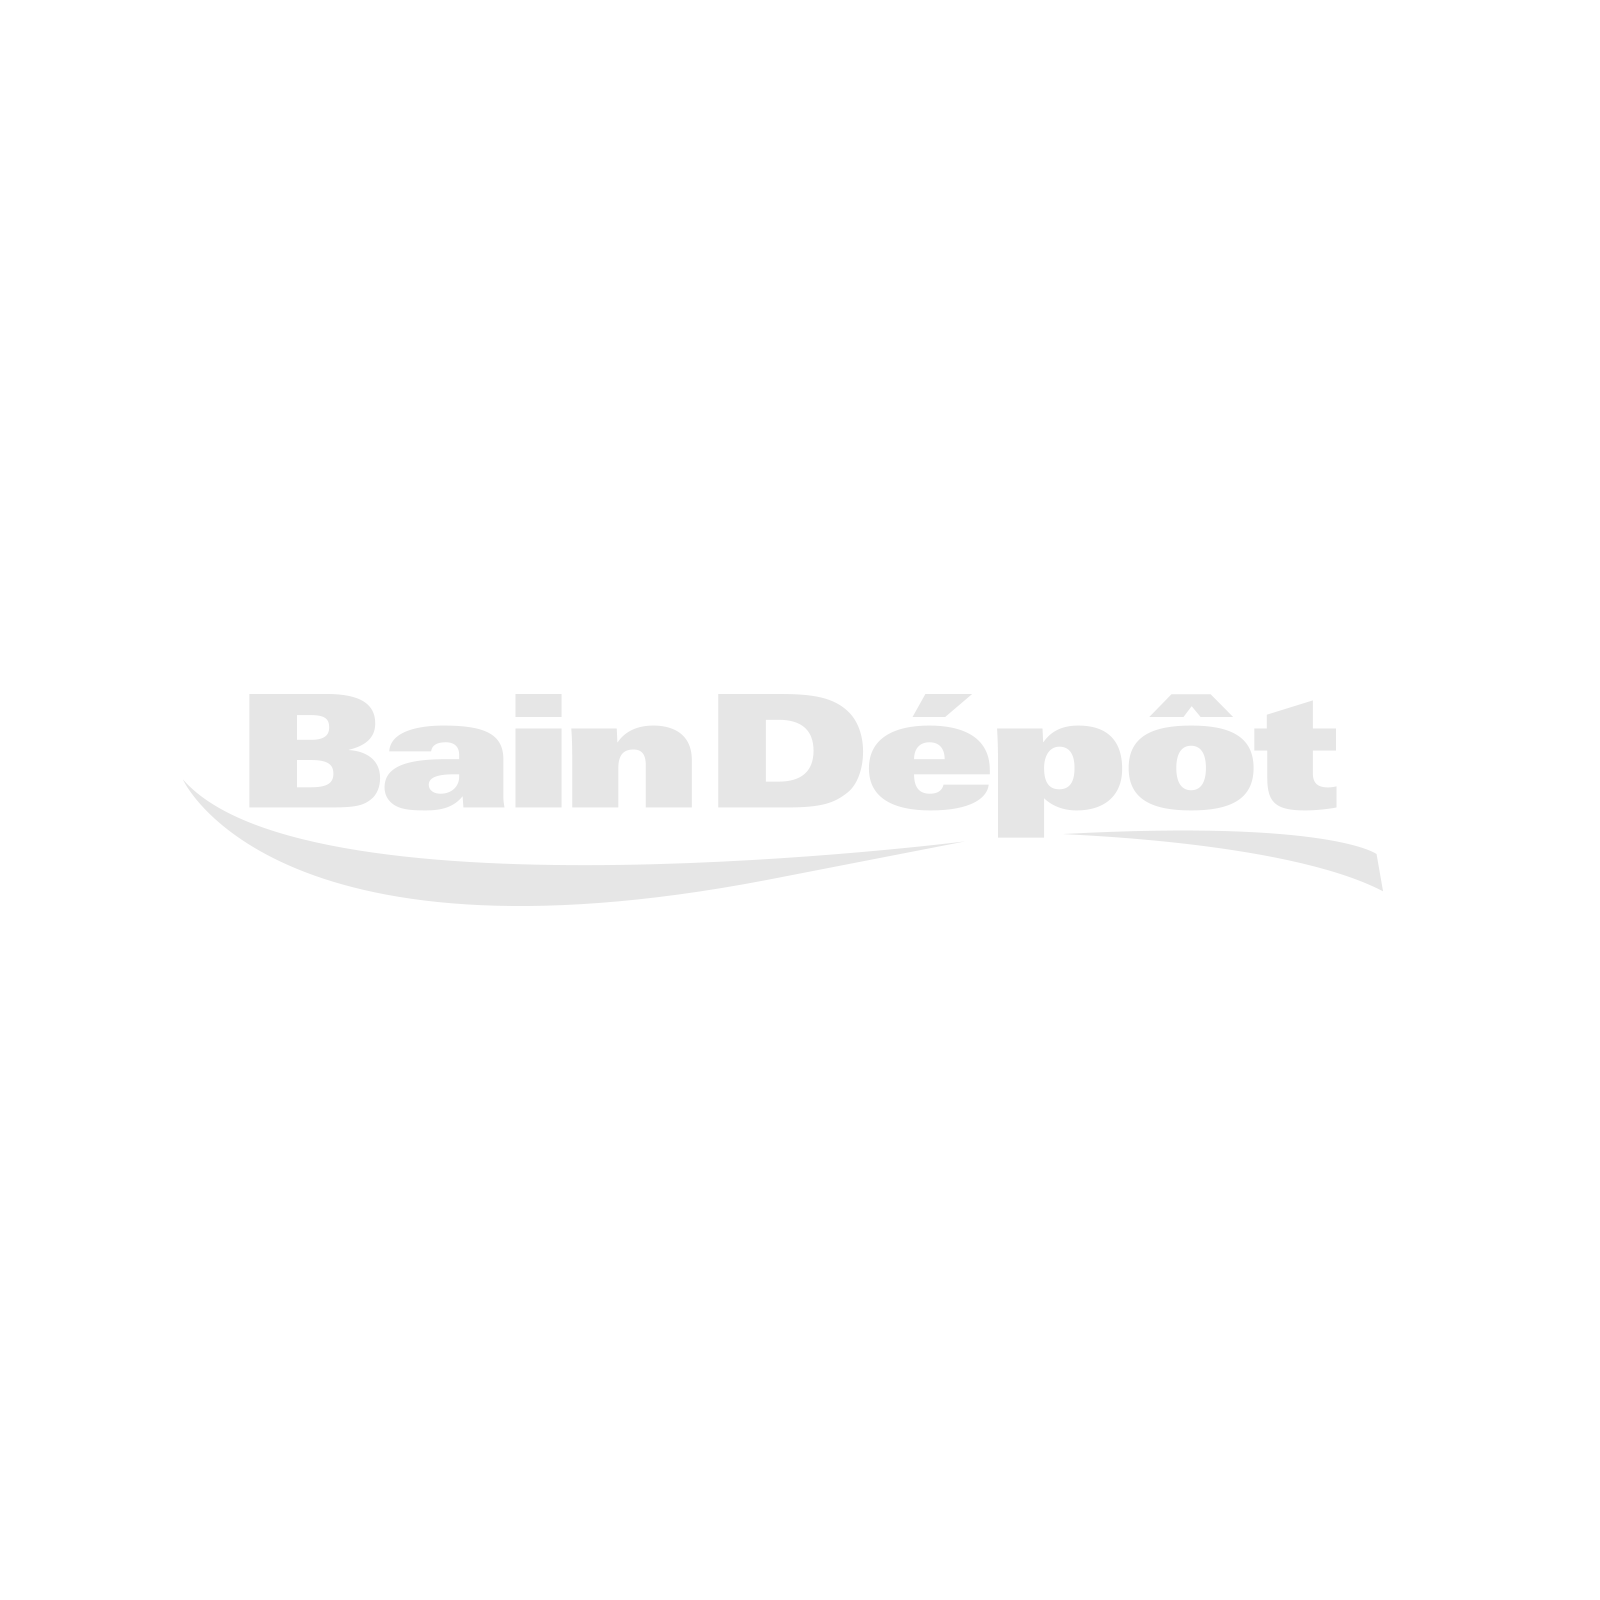 "37"" Black quartz vanity top with rectangular sink"